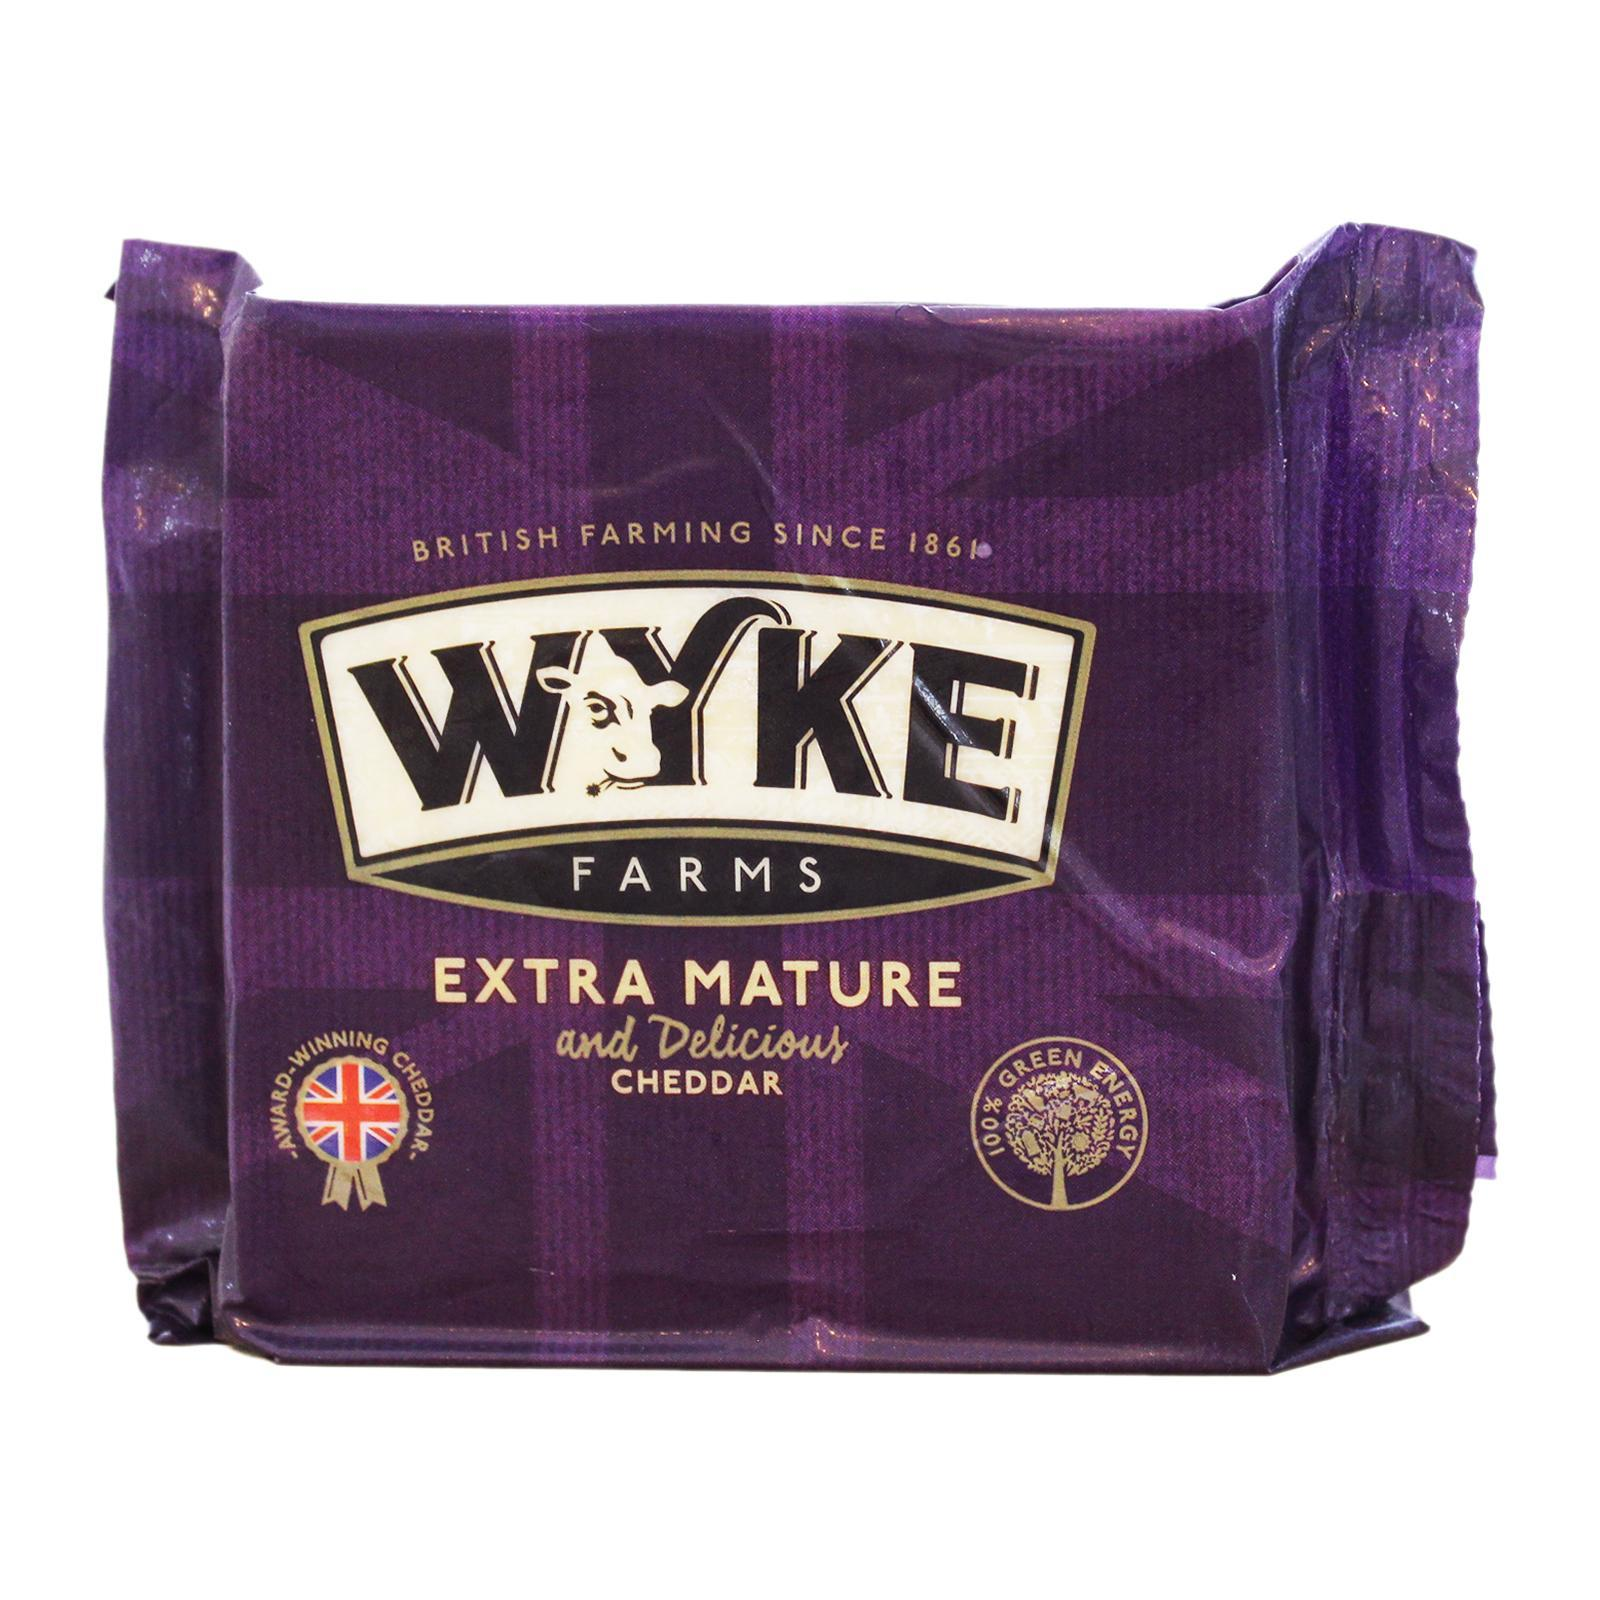 Wyke Farms Extra Mature Farmhouse Cheddar matured 12 months